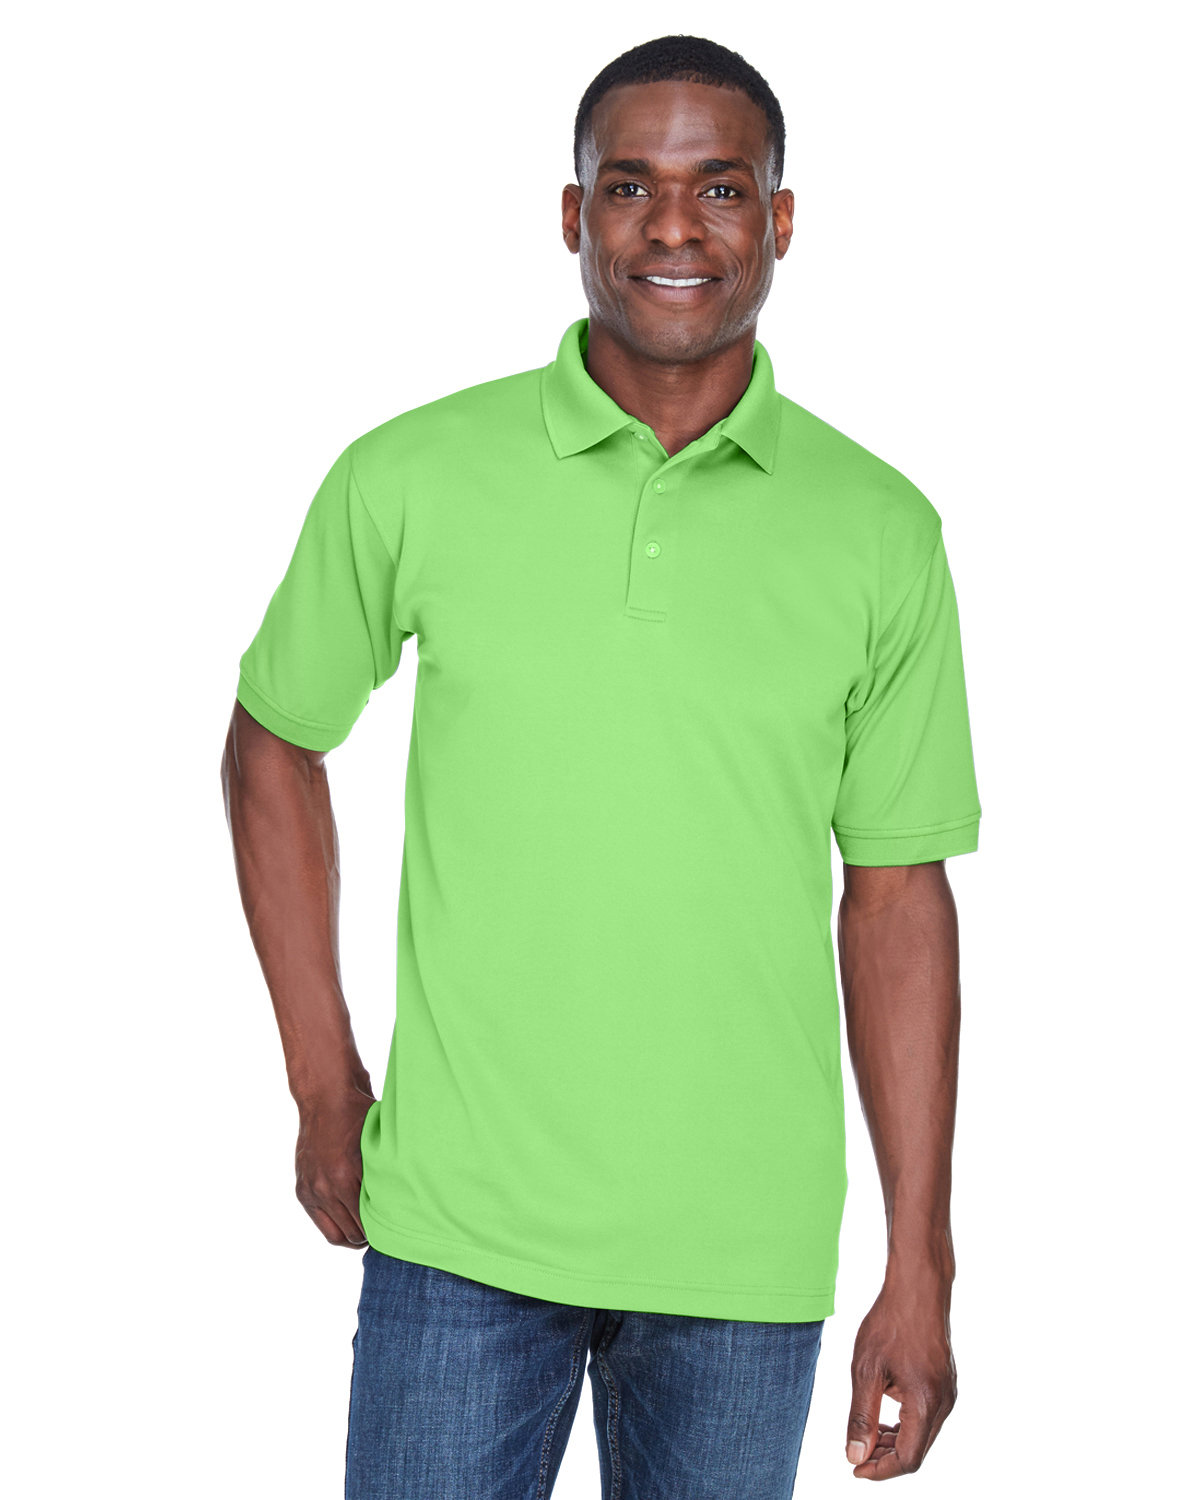 UltraClub Men's PlatinumPerformance Piqué Polo with TempControl Technology LIGHT GREEN